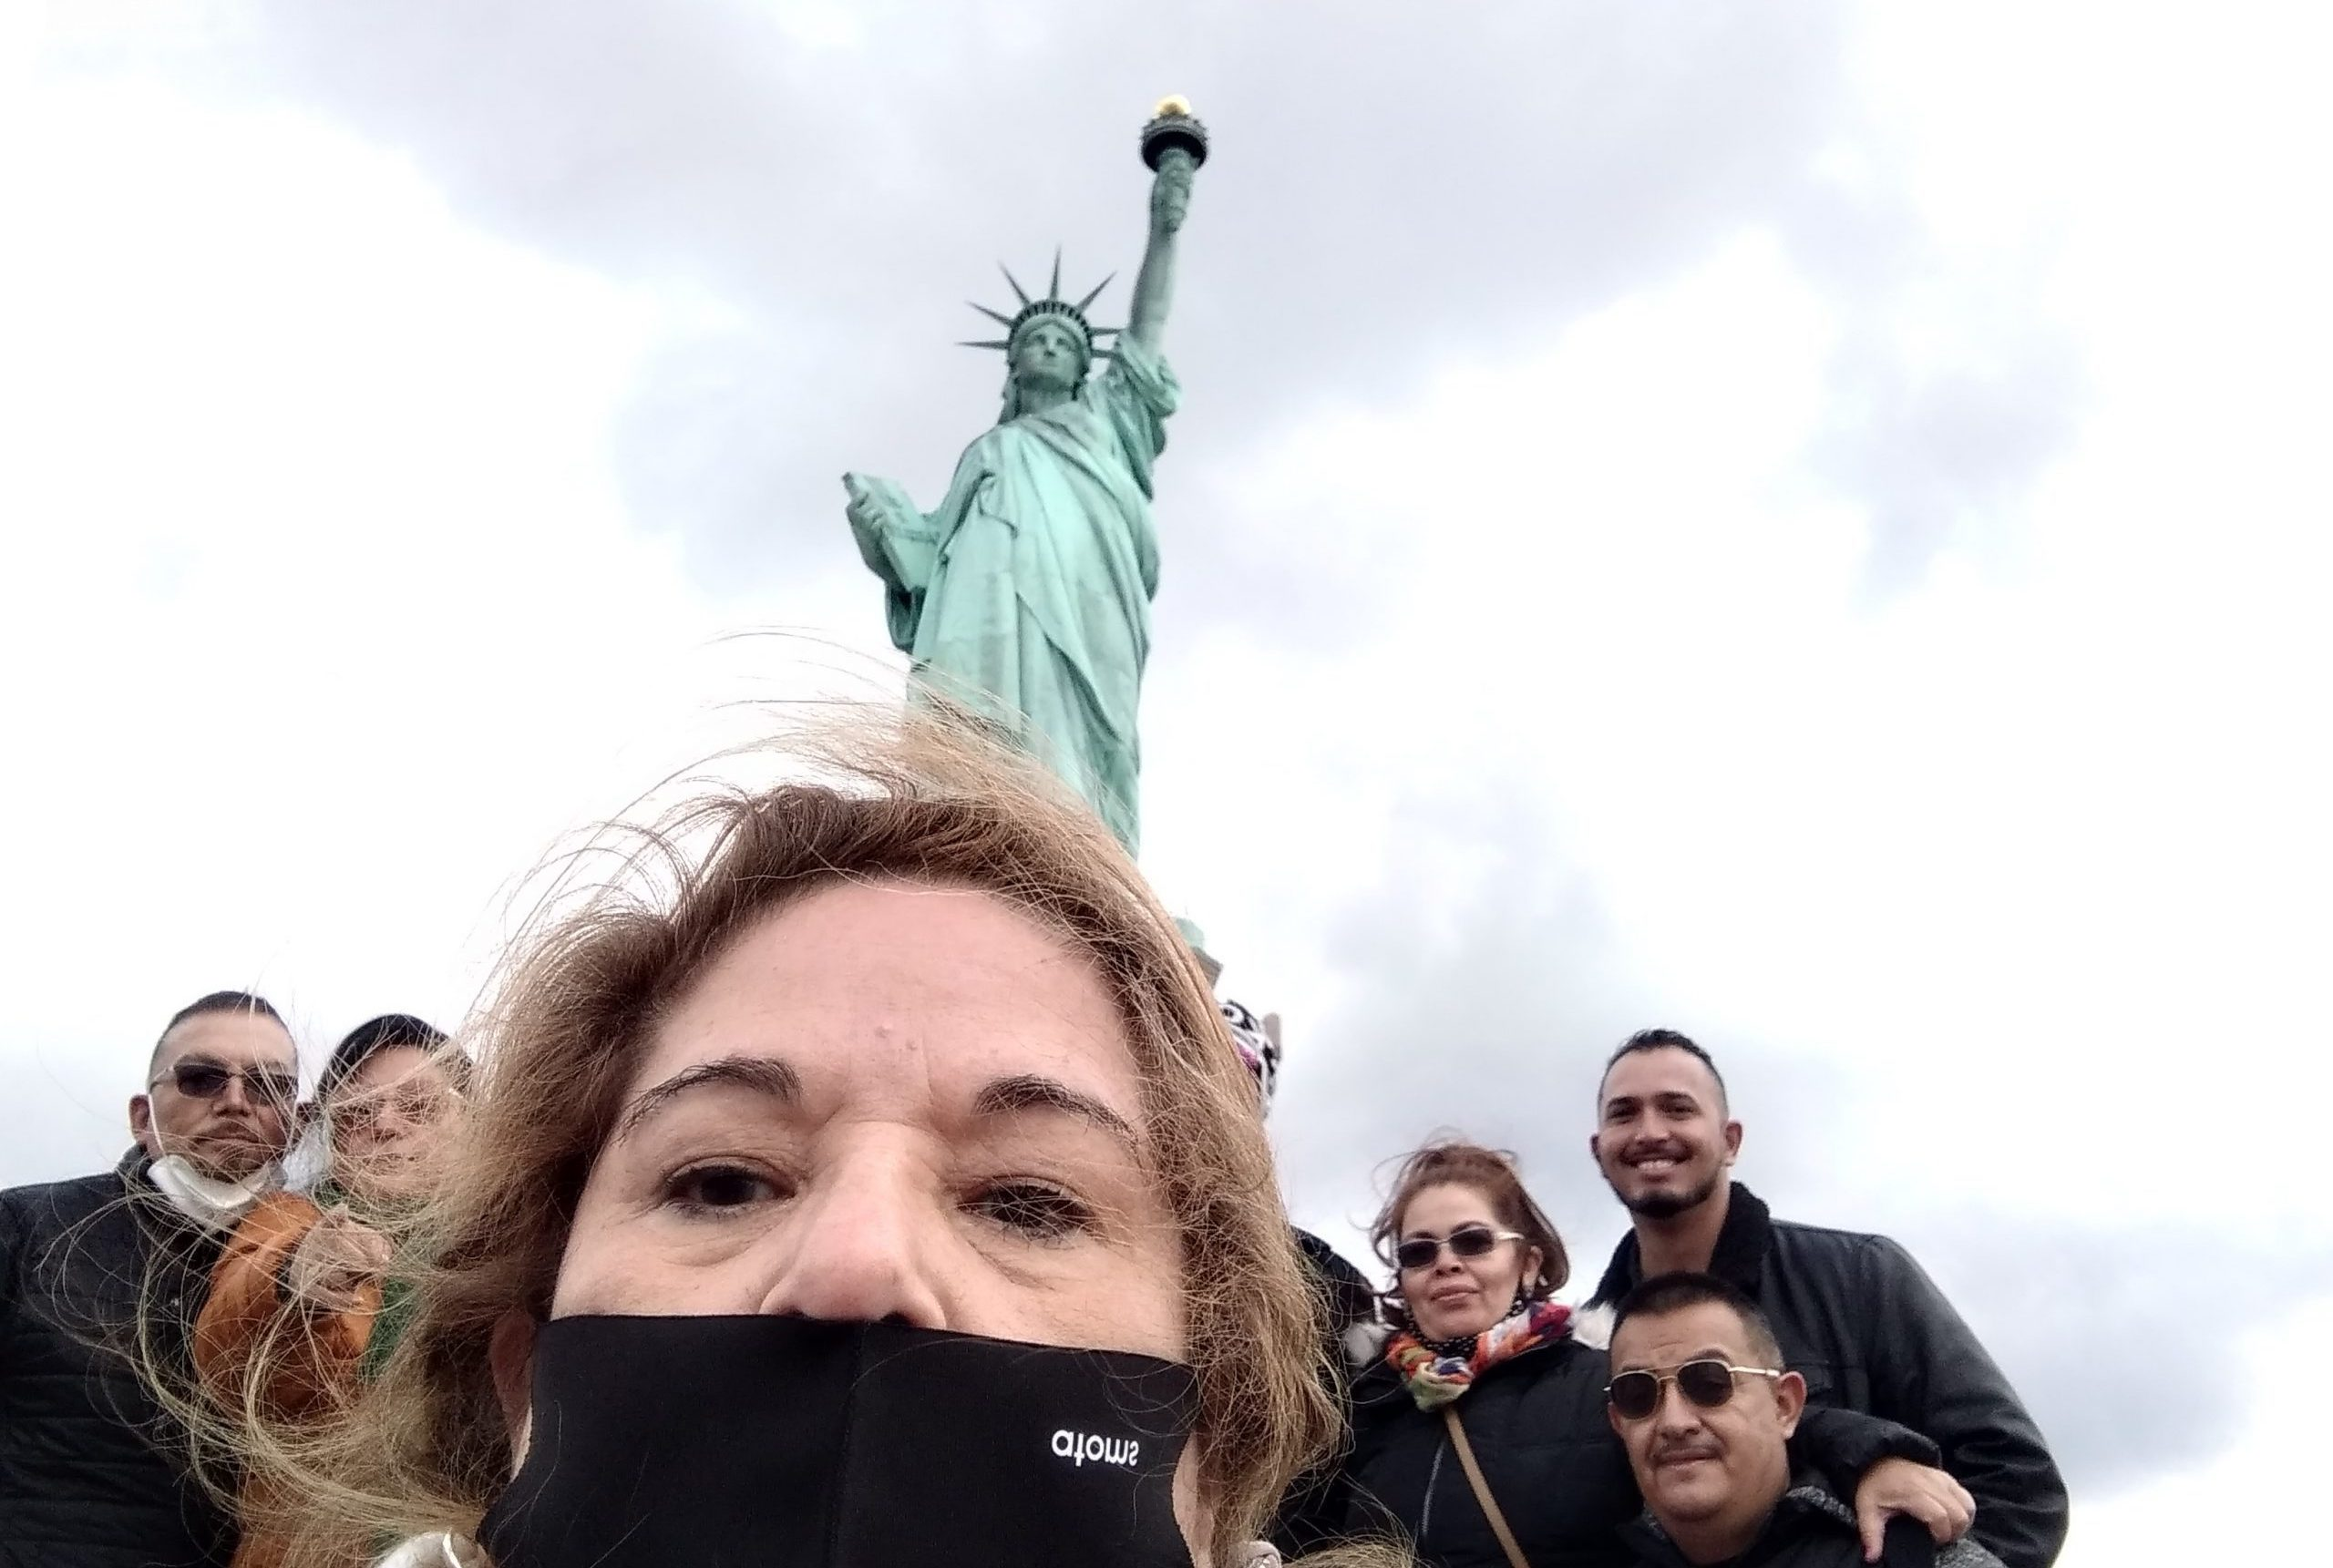 Tour group wearing masks at Statue of Liberty during COVID-19